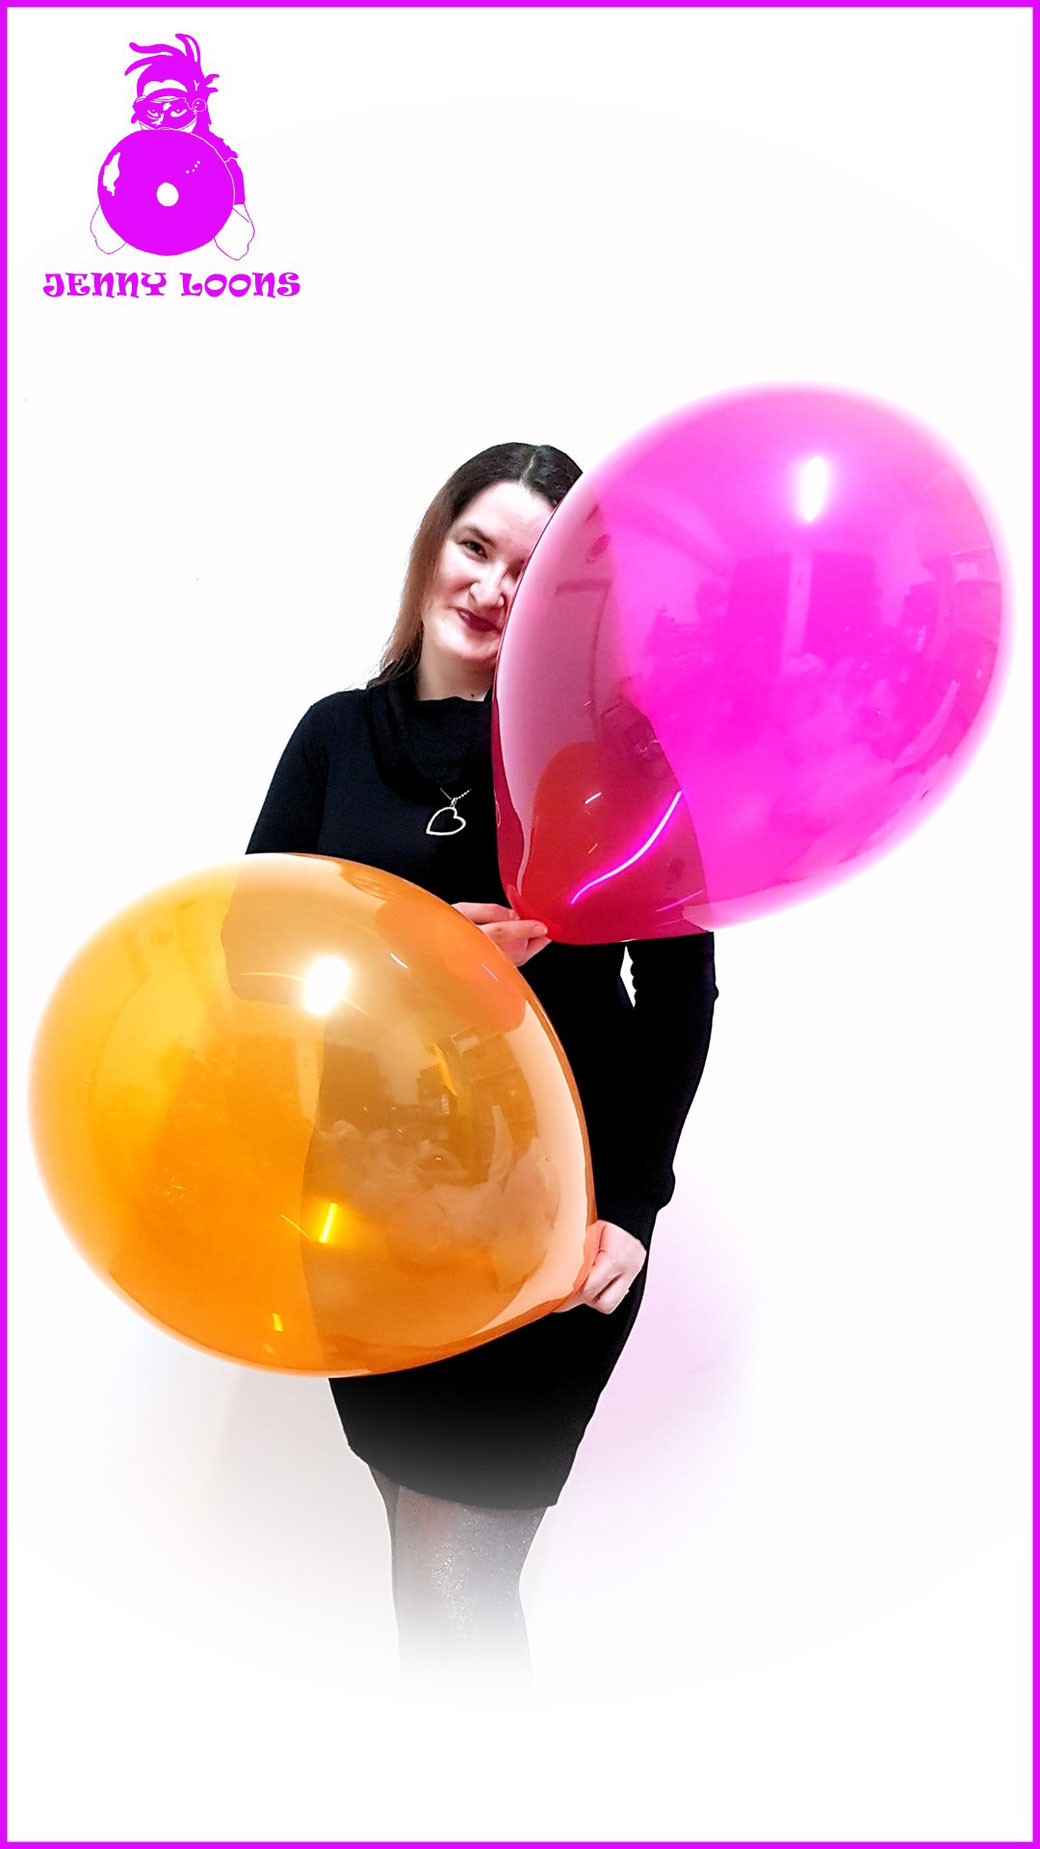 Qualatex Luftballon Ballon Kristall Crystal 16inch 40cm Looner pink orange purple Balloon Balloons